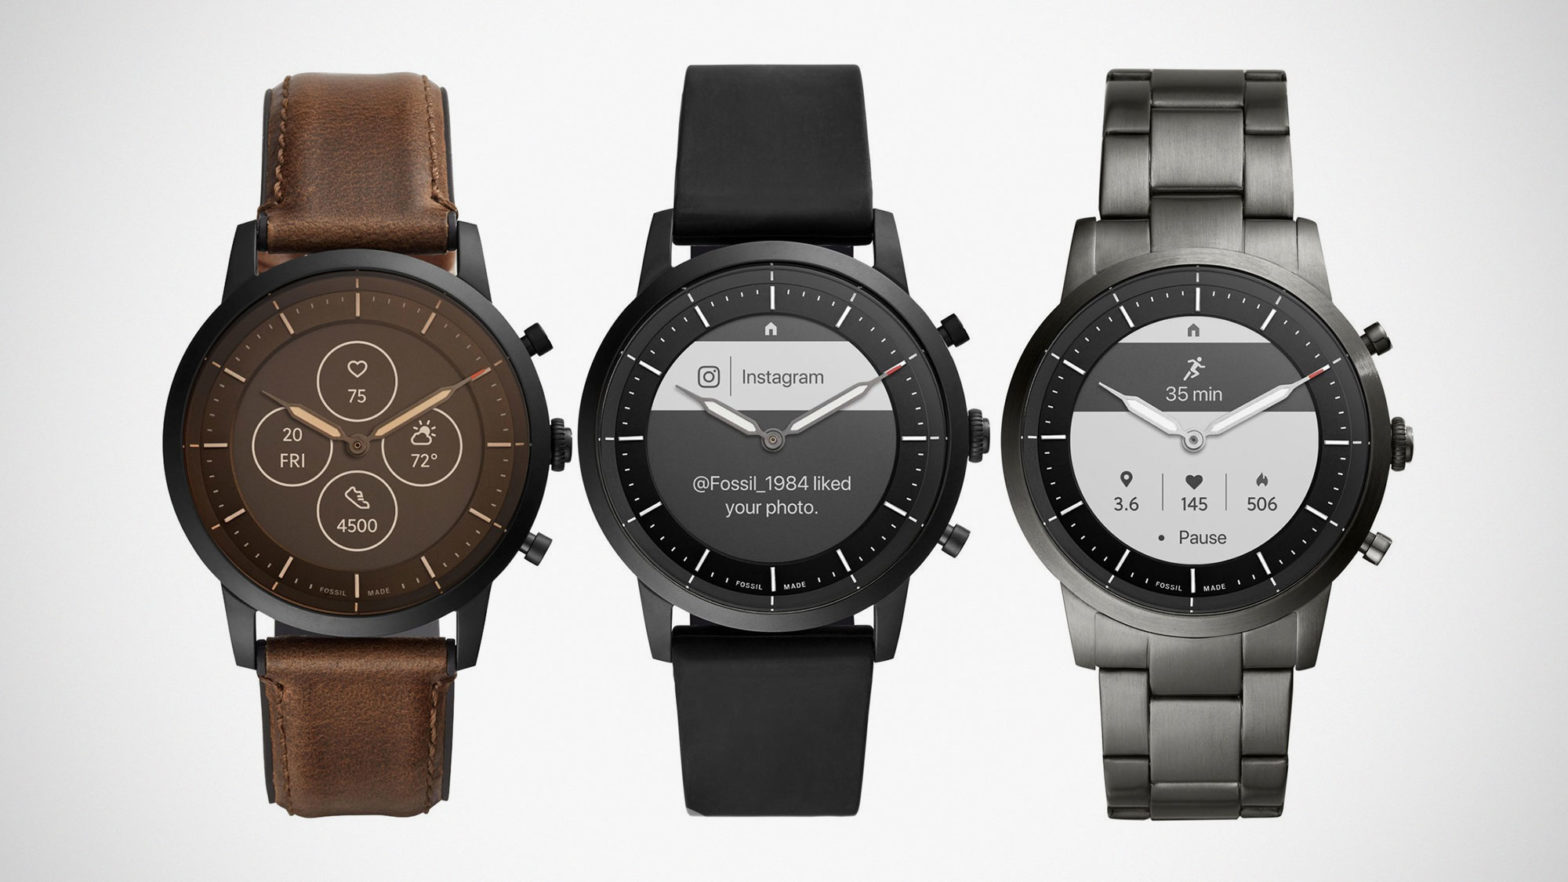 Fossil Collider DIANA Smartwatch